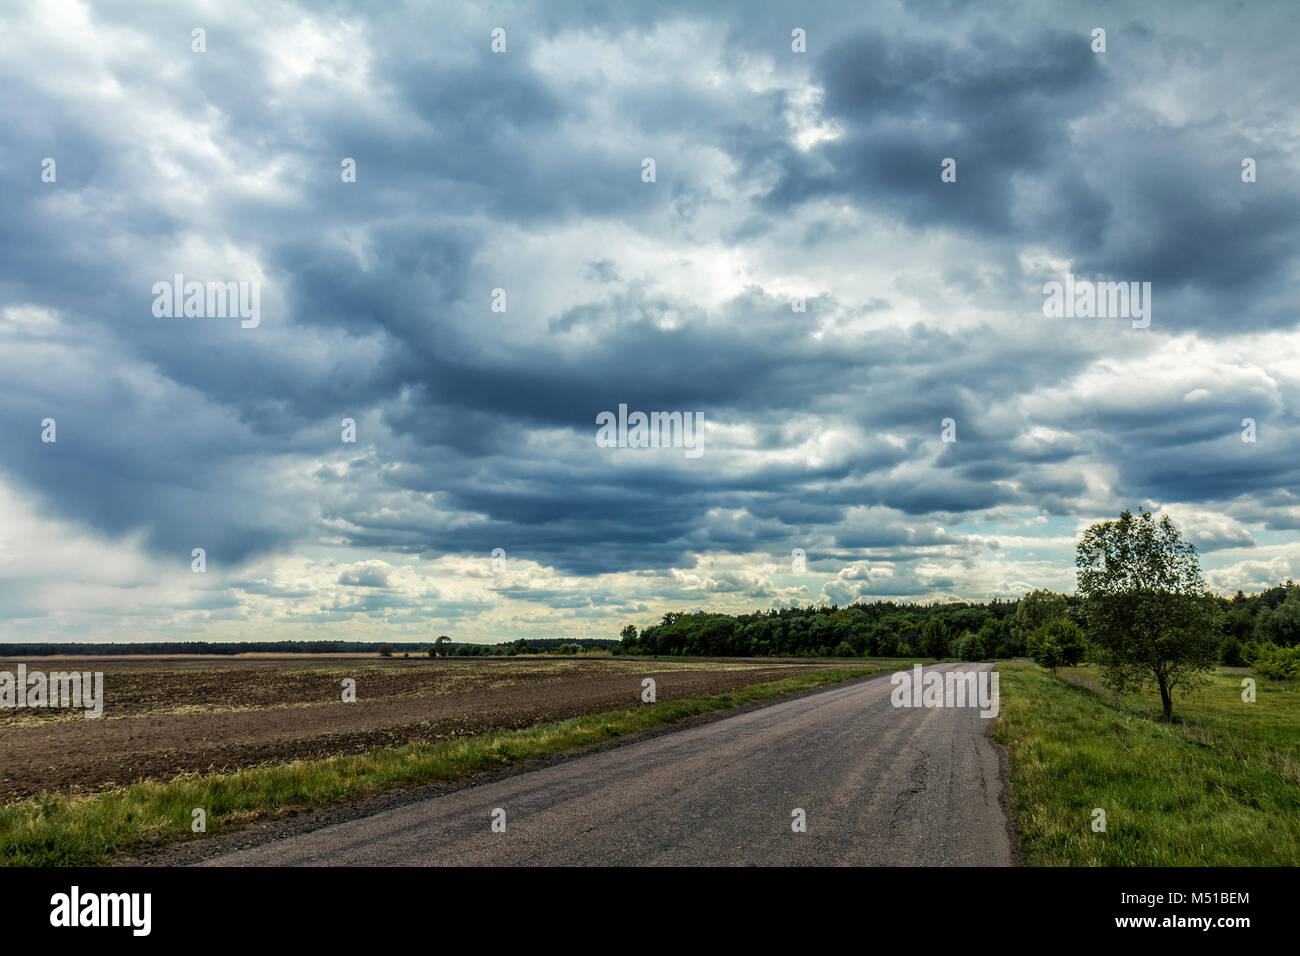 Mysterious clouds in the sky over an country road Stock Photo